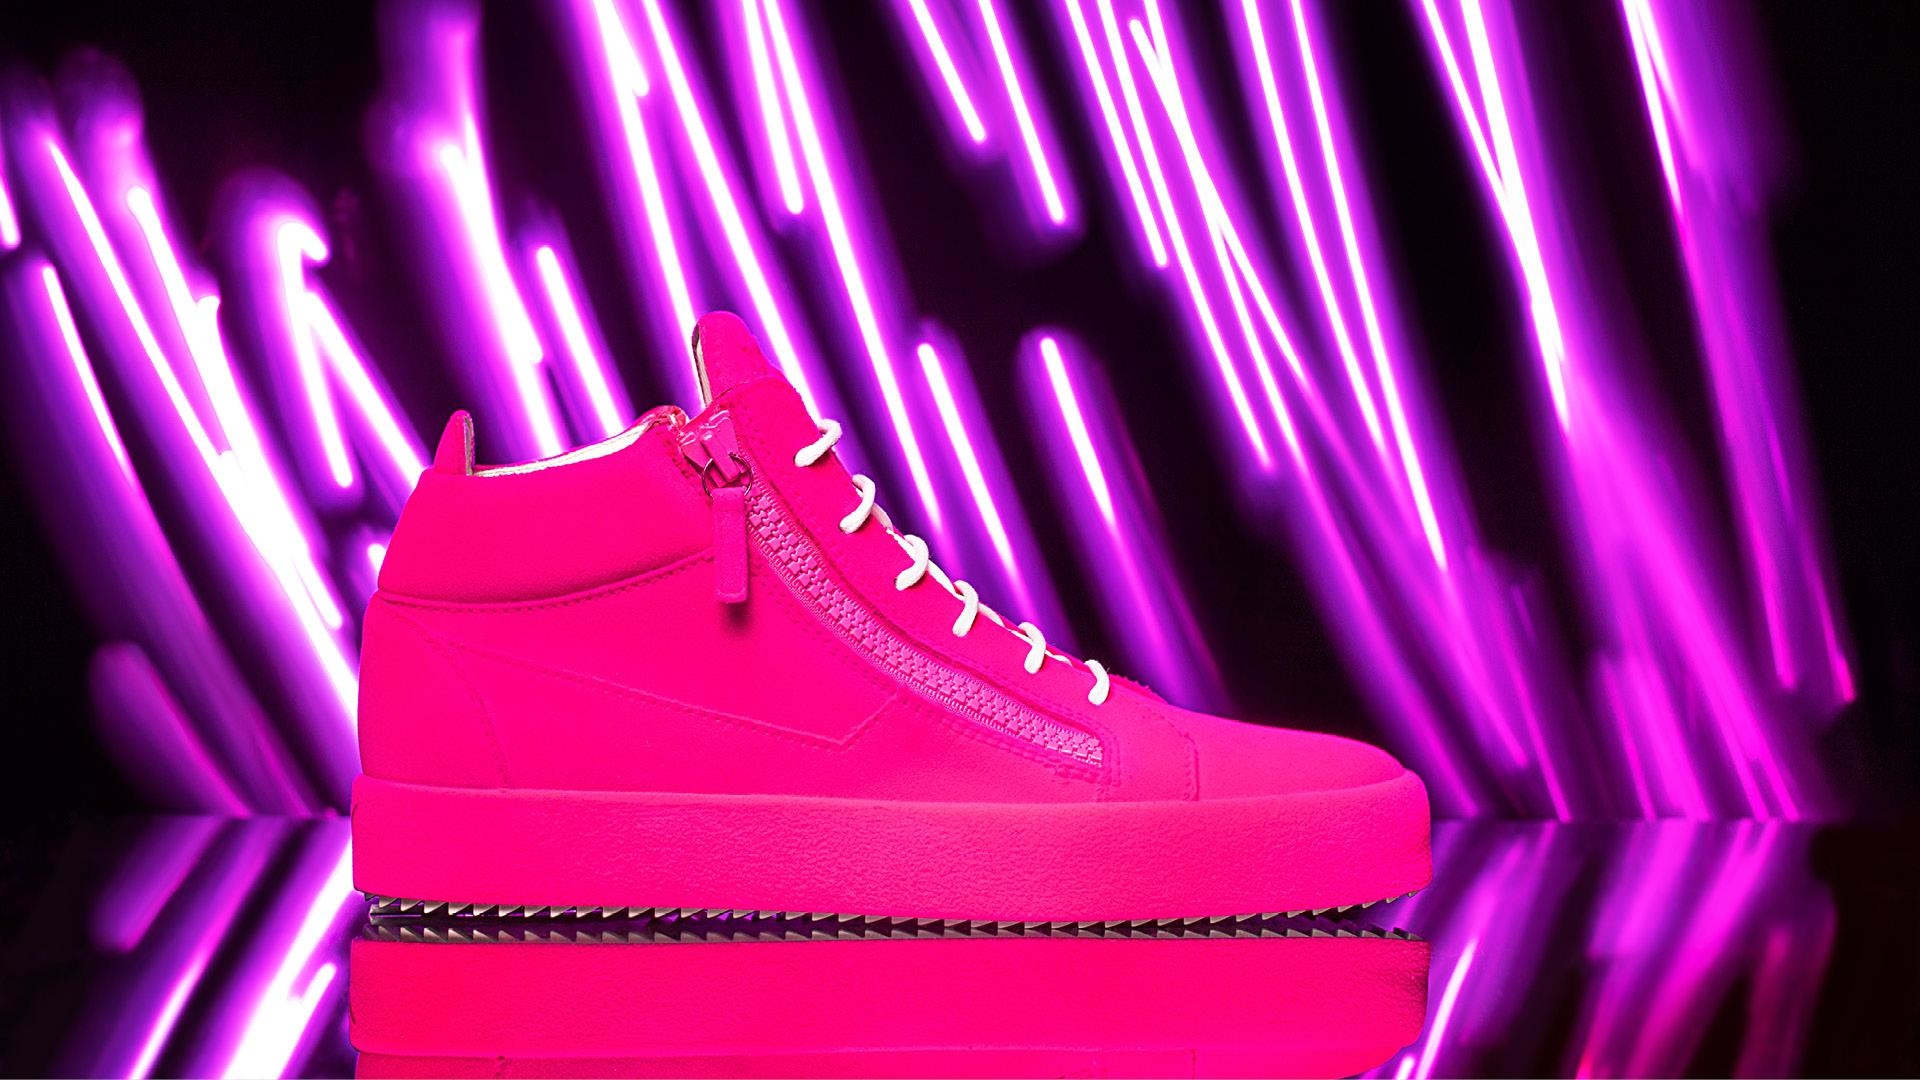 Giuseppe Zanotti Launches 'Unfinished' Capsule Collection